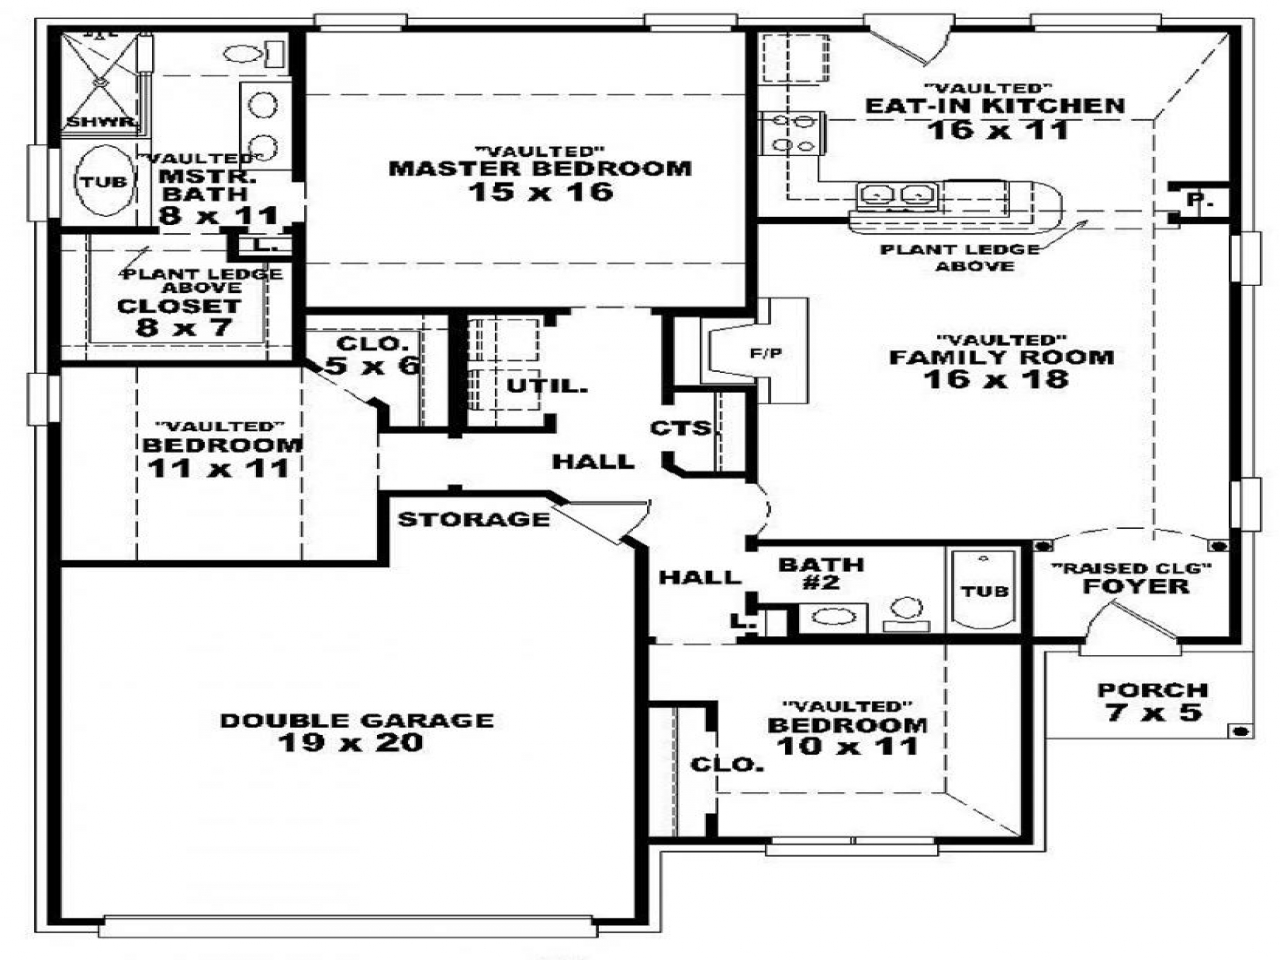 3 bed 2 bath house plans 3 bedroom 2 bath 1 story house plans floor plans for 3 bedroom 2 bath house one story 2 bedroom 5102